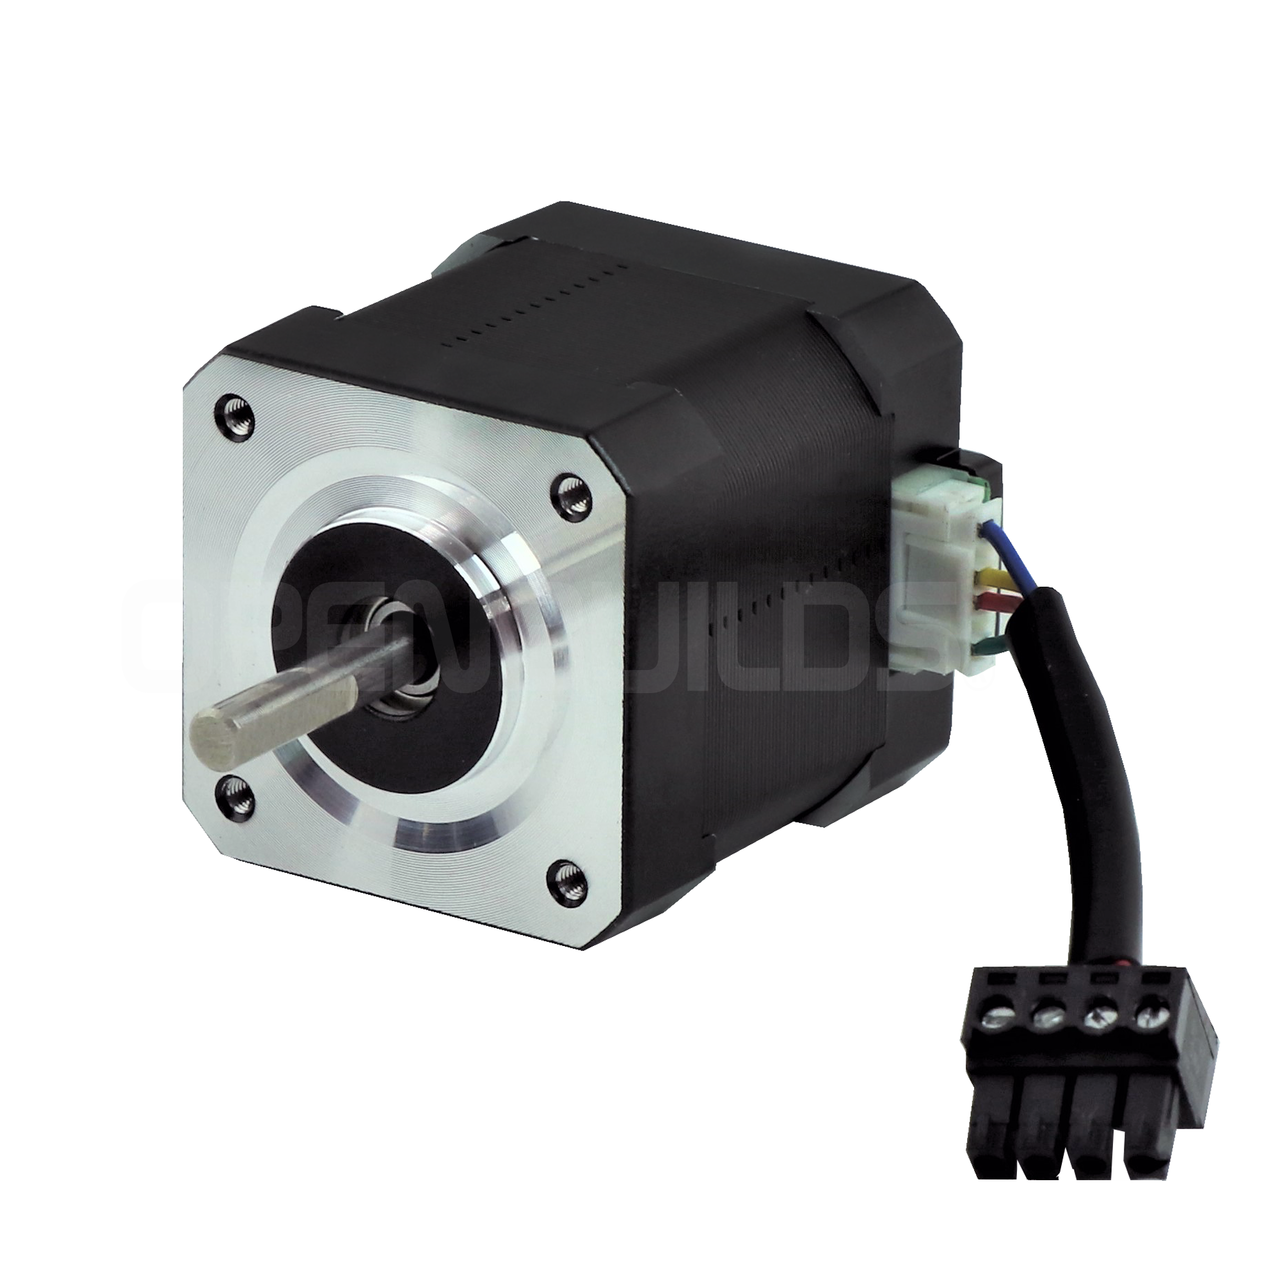 Admirable Nema 17 Stepper Motor Openbuilds Part Store Wiring Cloud Oideiuggs Outletorg